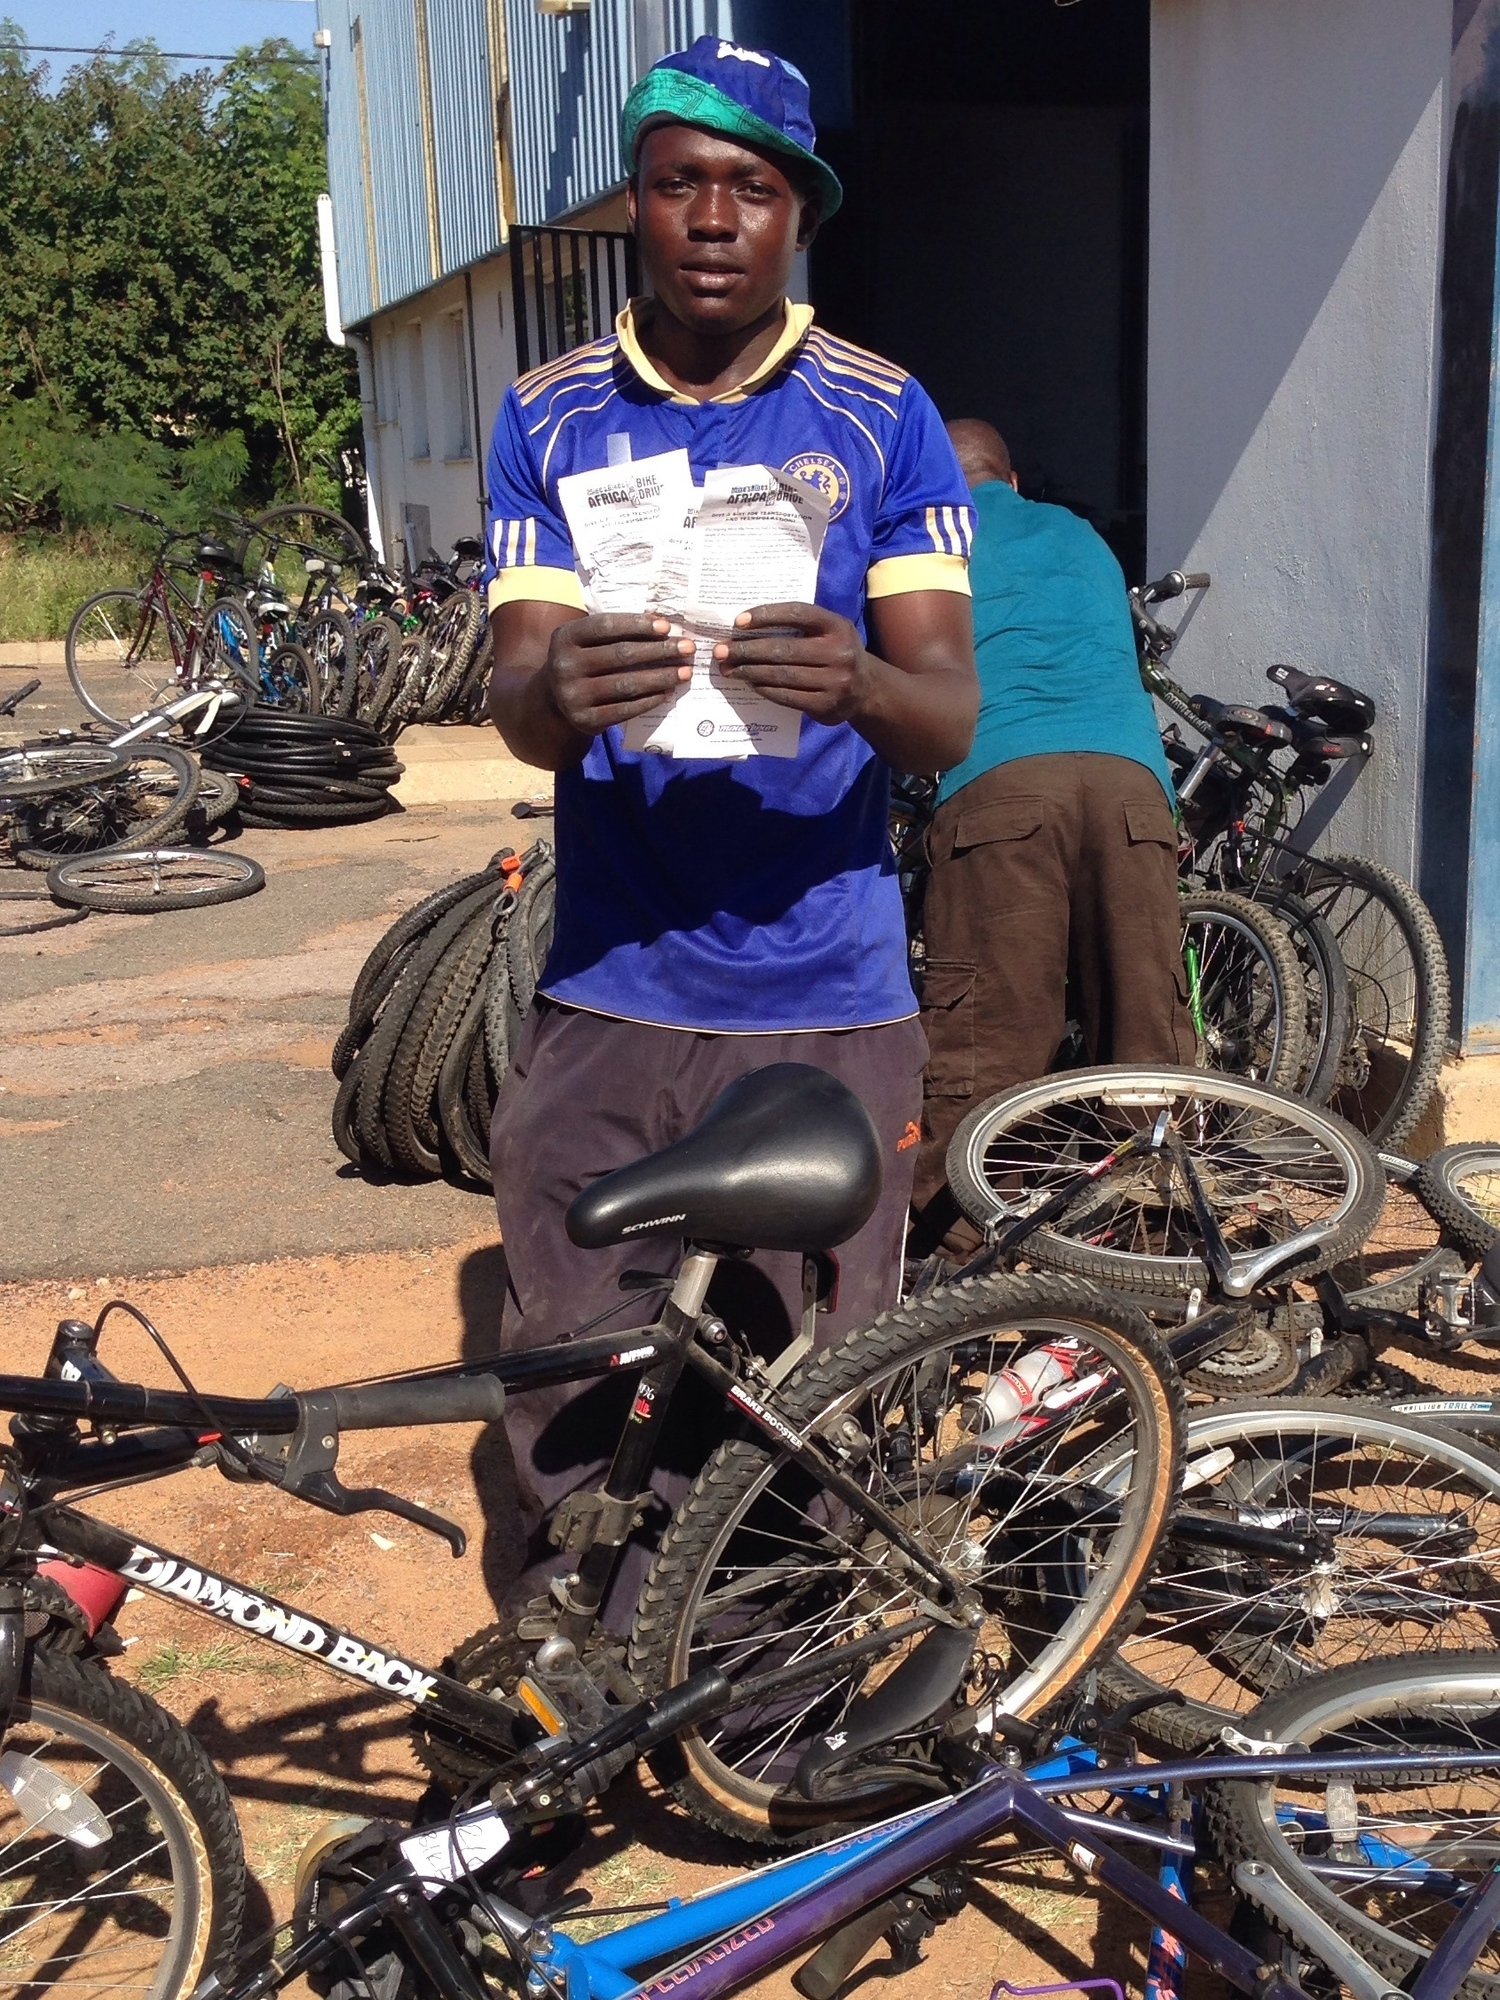 Refine with his new stock and slips from our bike donors in California.